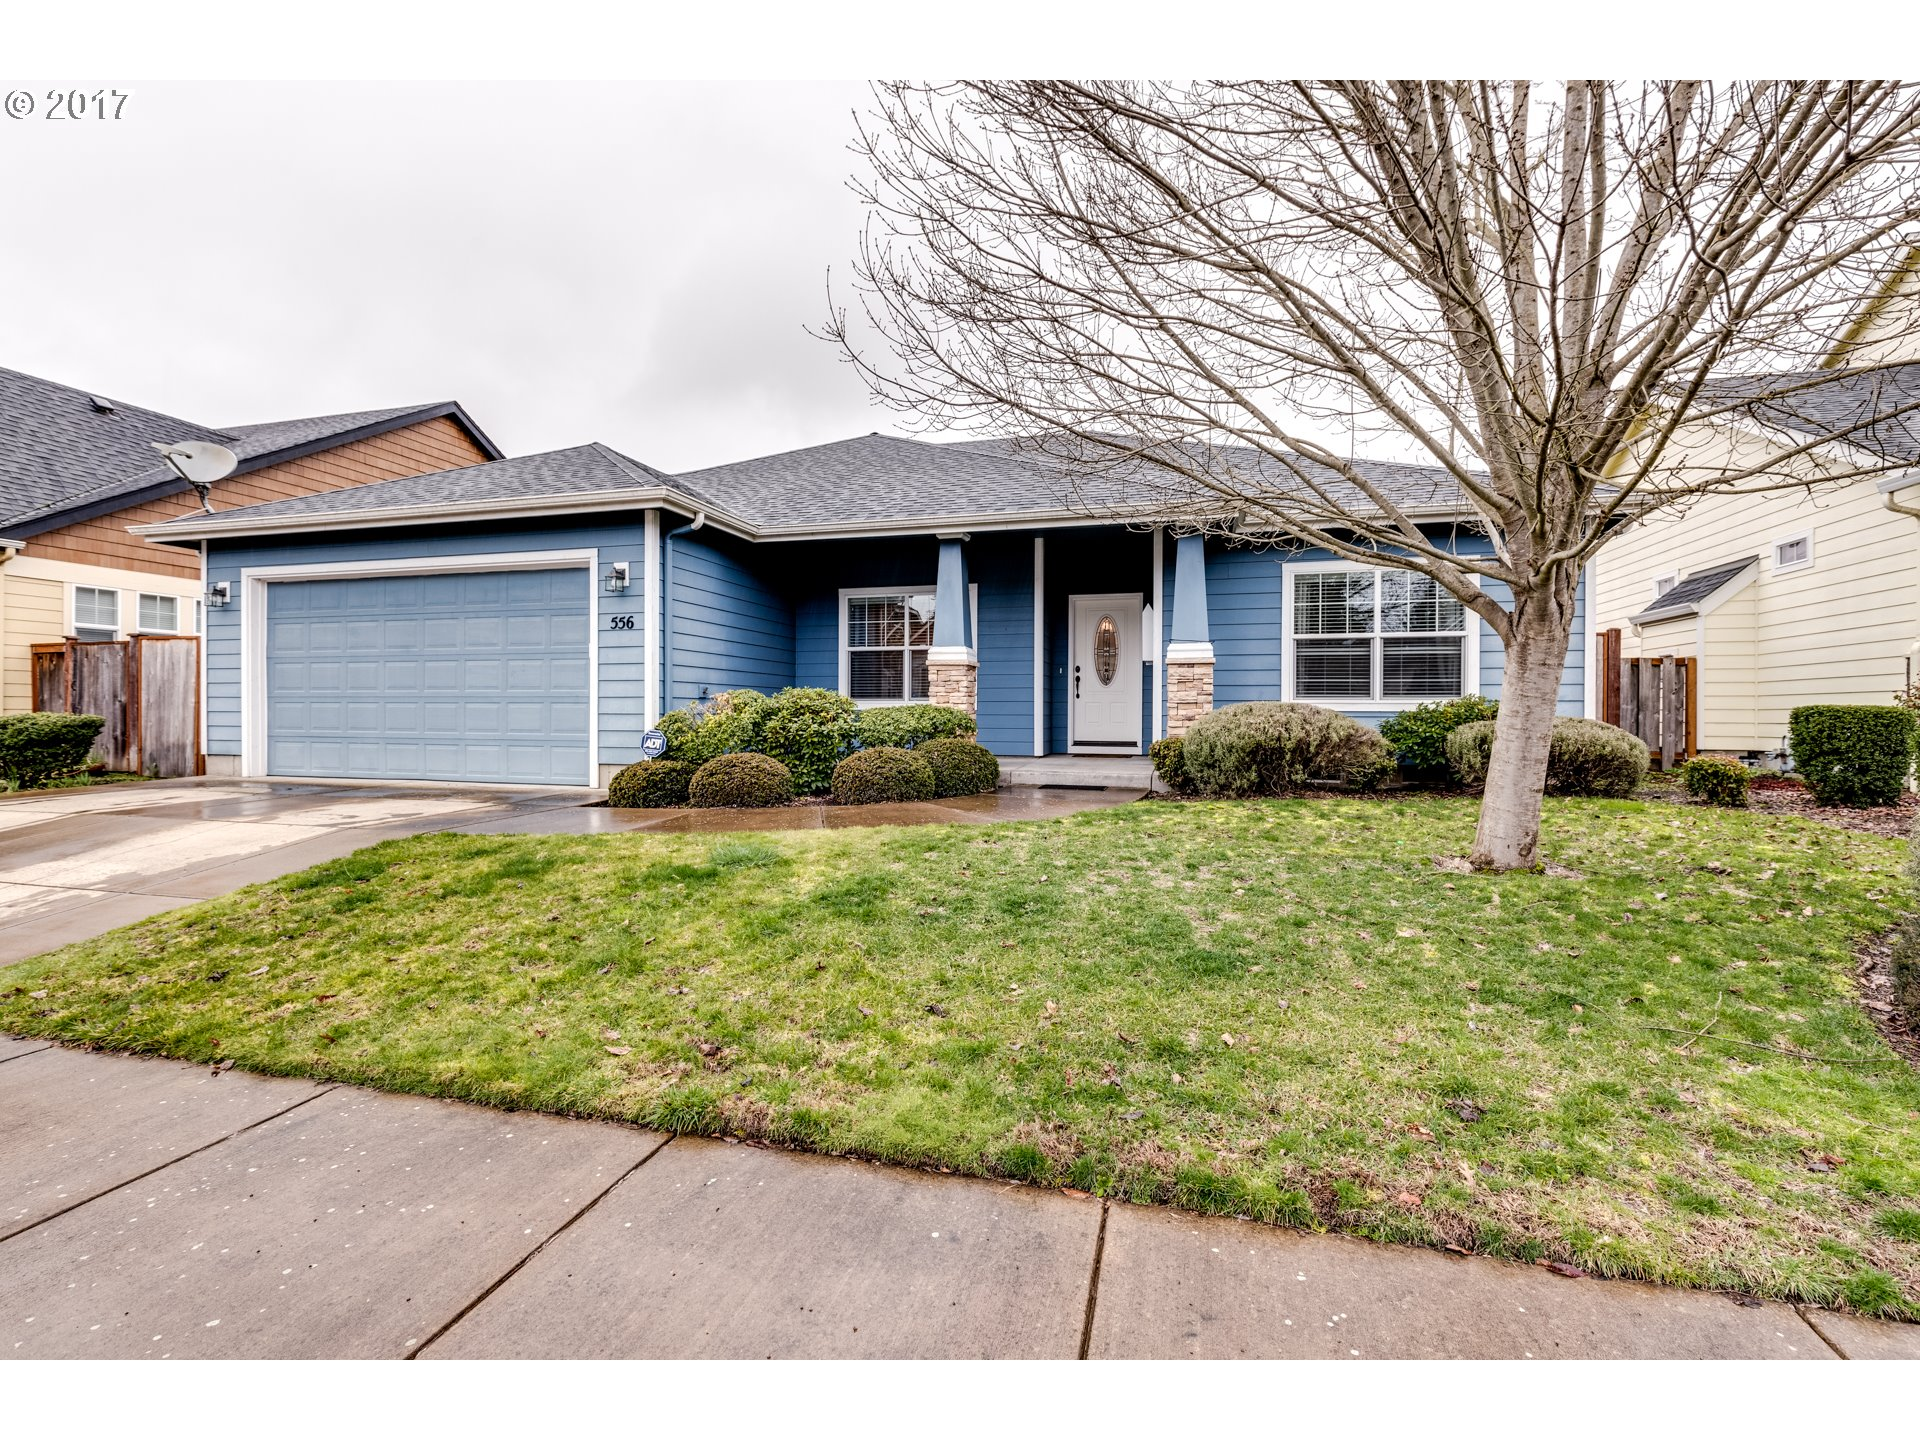 556 ETHAN CT, Springfield, OR 97477